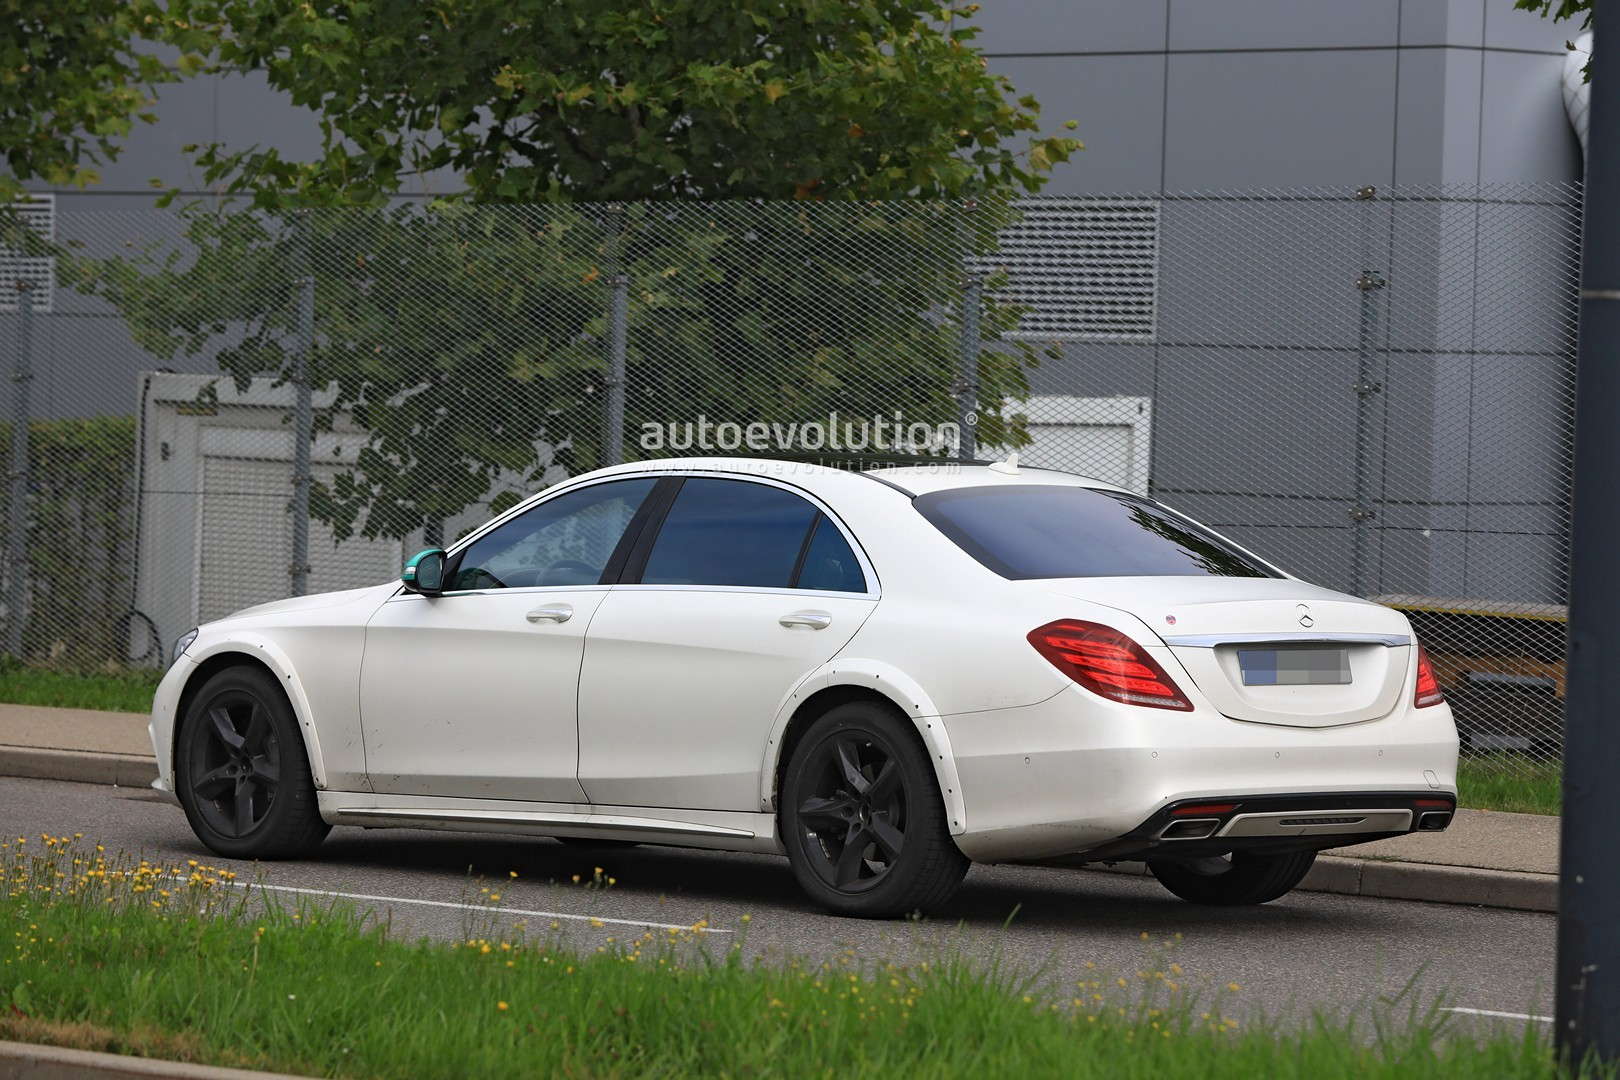 spyshots  2020 mercedes s-class w223 mule spied for the first time  looks wider